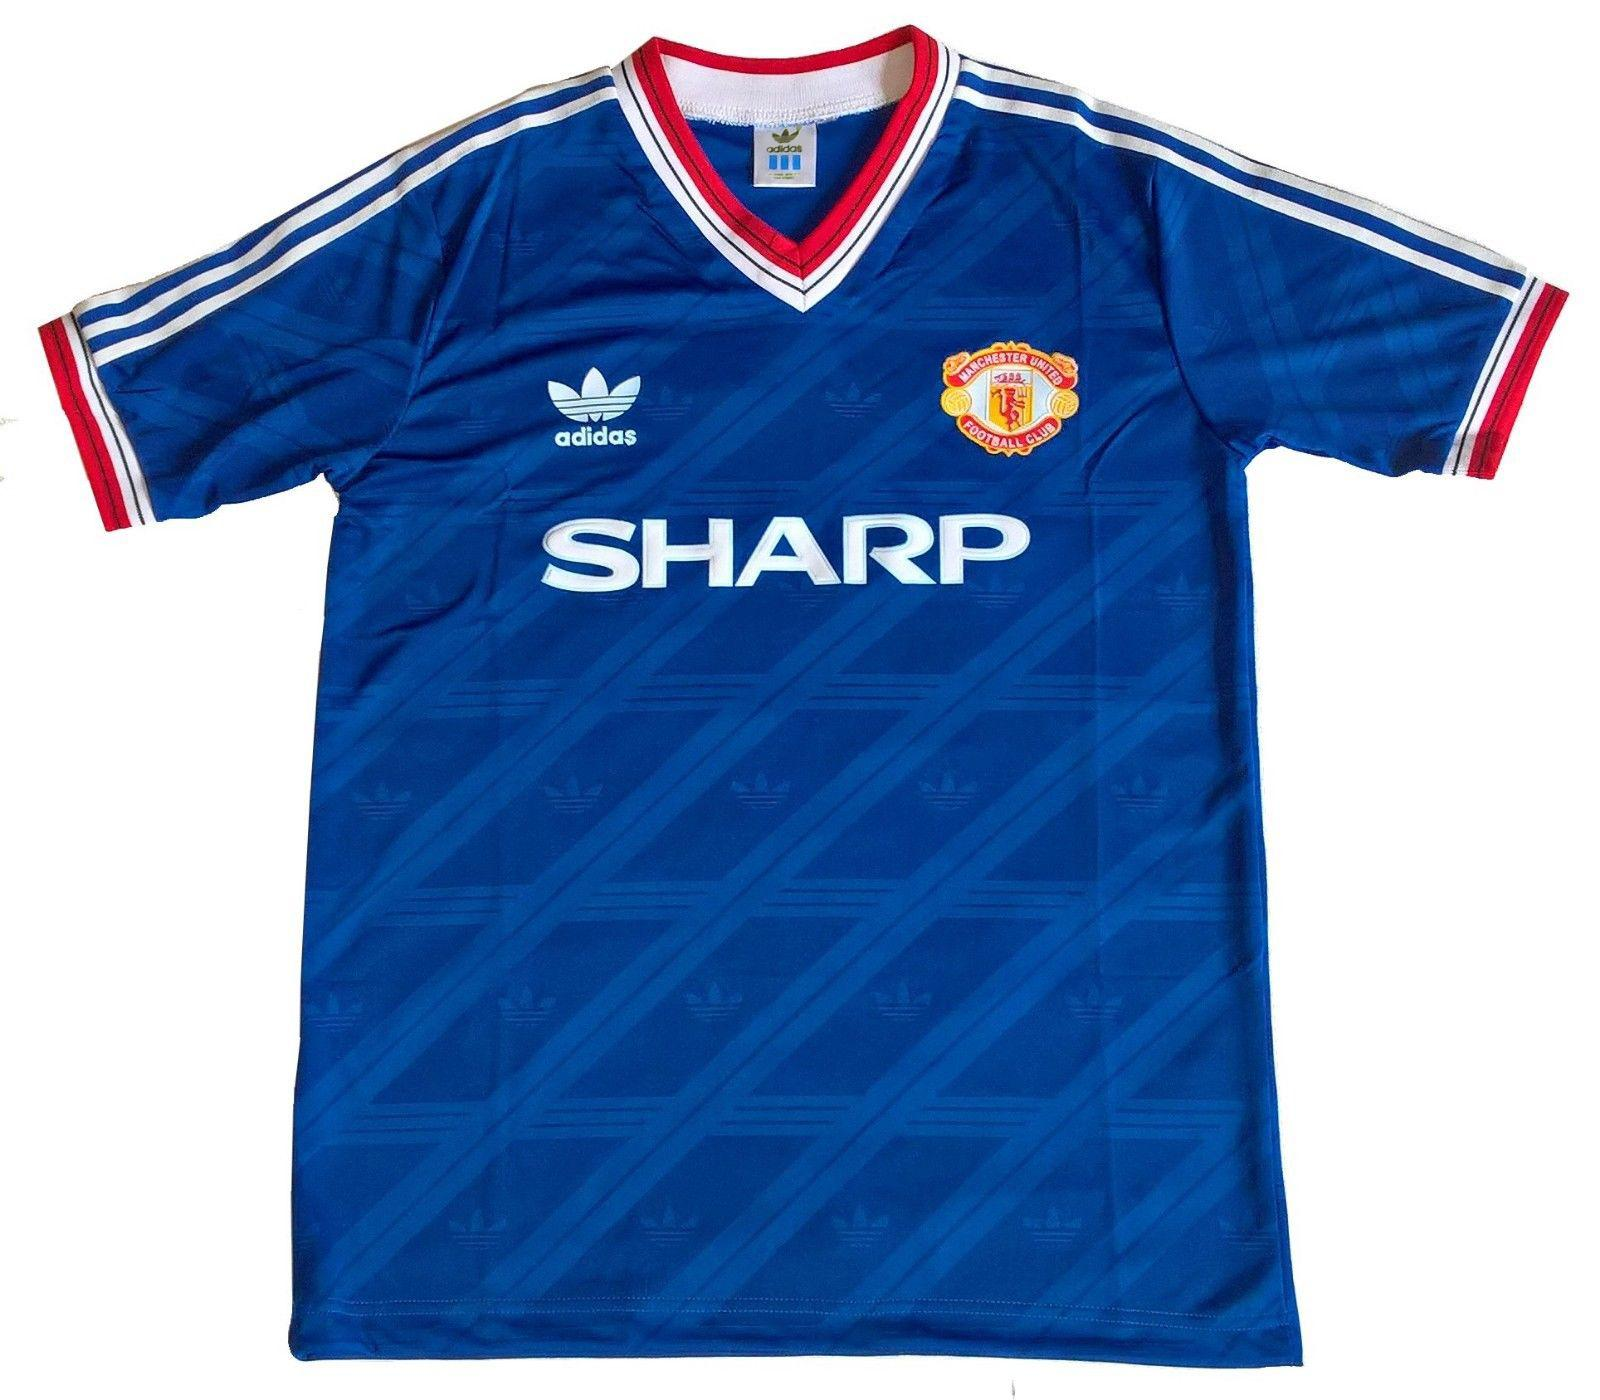 664293a55 Brand New Manchester United Adidas Originals 1986 Third Retro Football  Jersey Made In UK